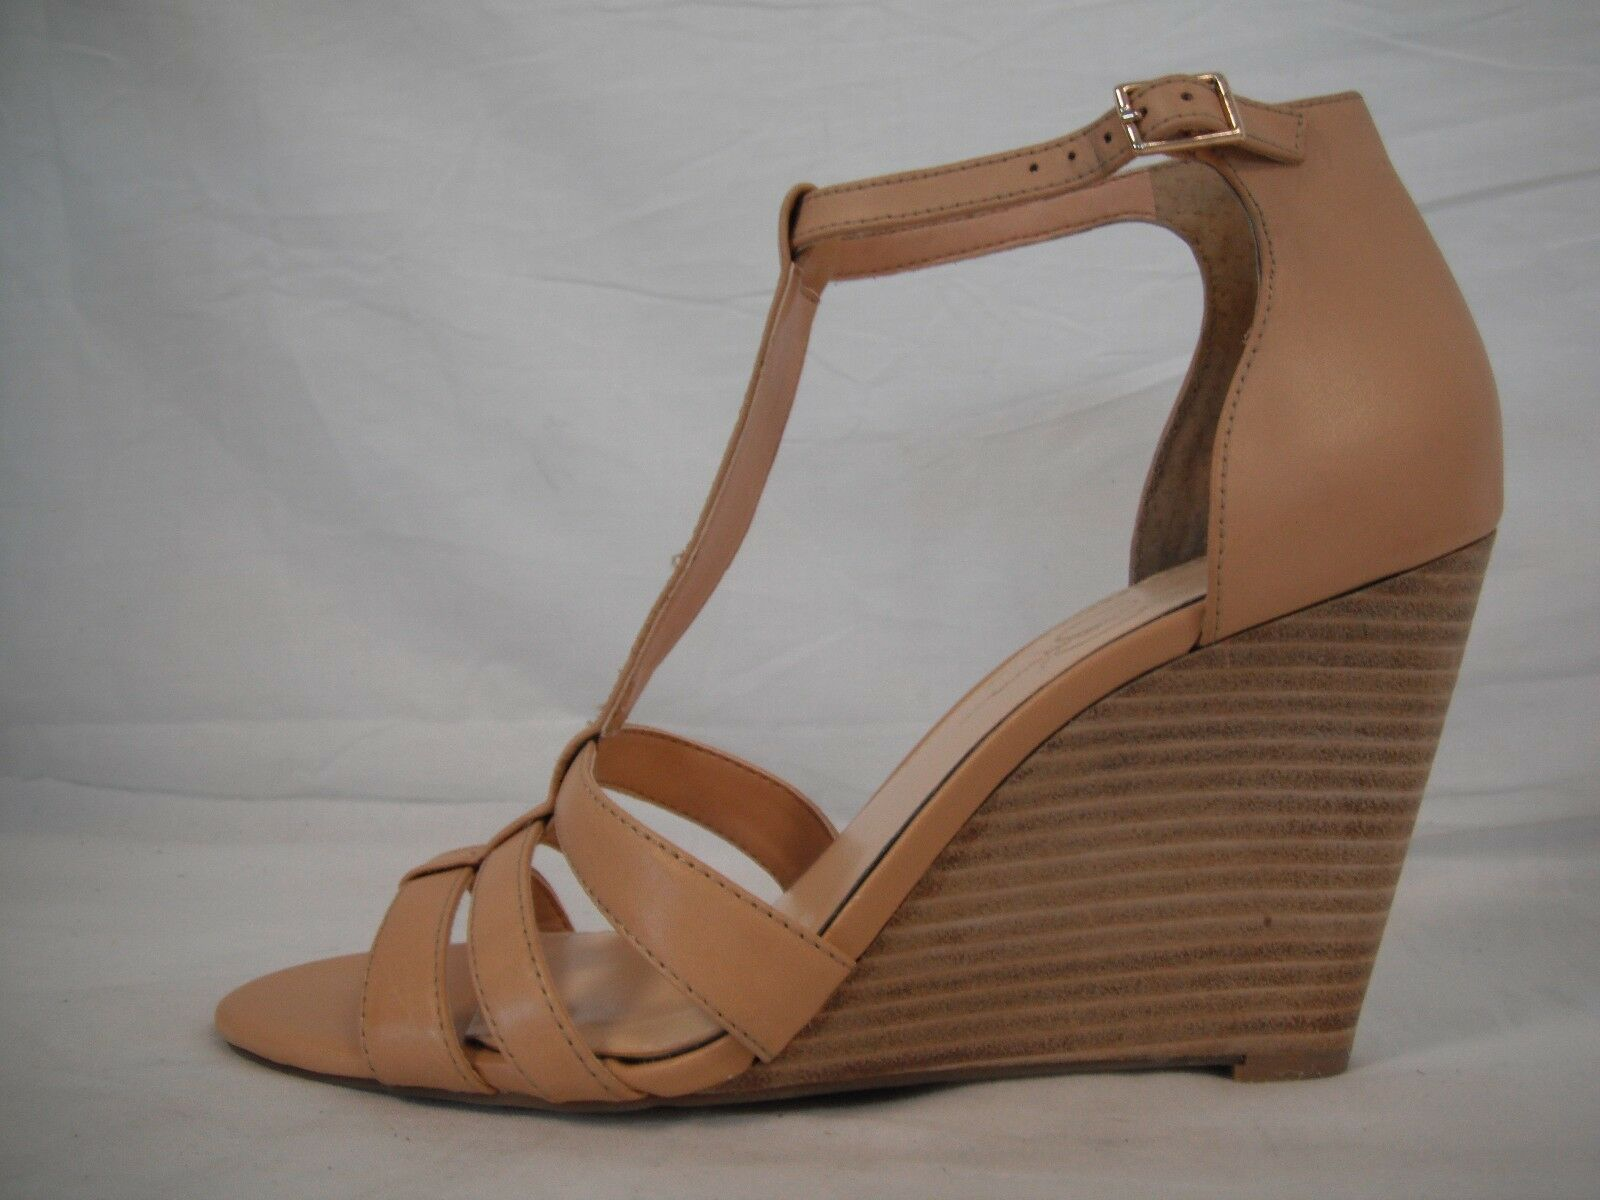 Jessica Simpson 10 M McCorde Nude Leather Open Toe Toe Toe Wedges New femmes chaussures NWOB 44e070